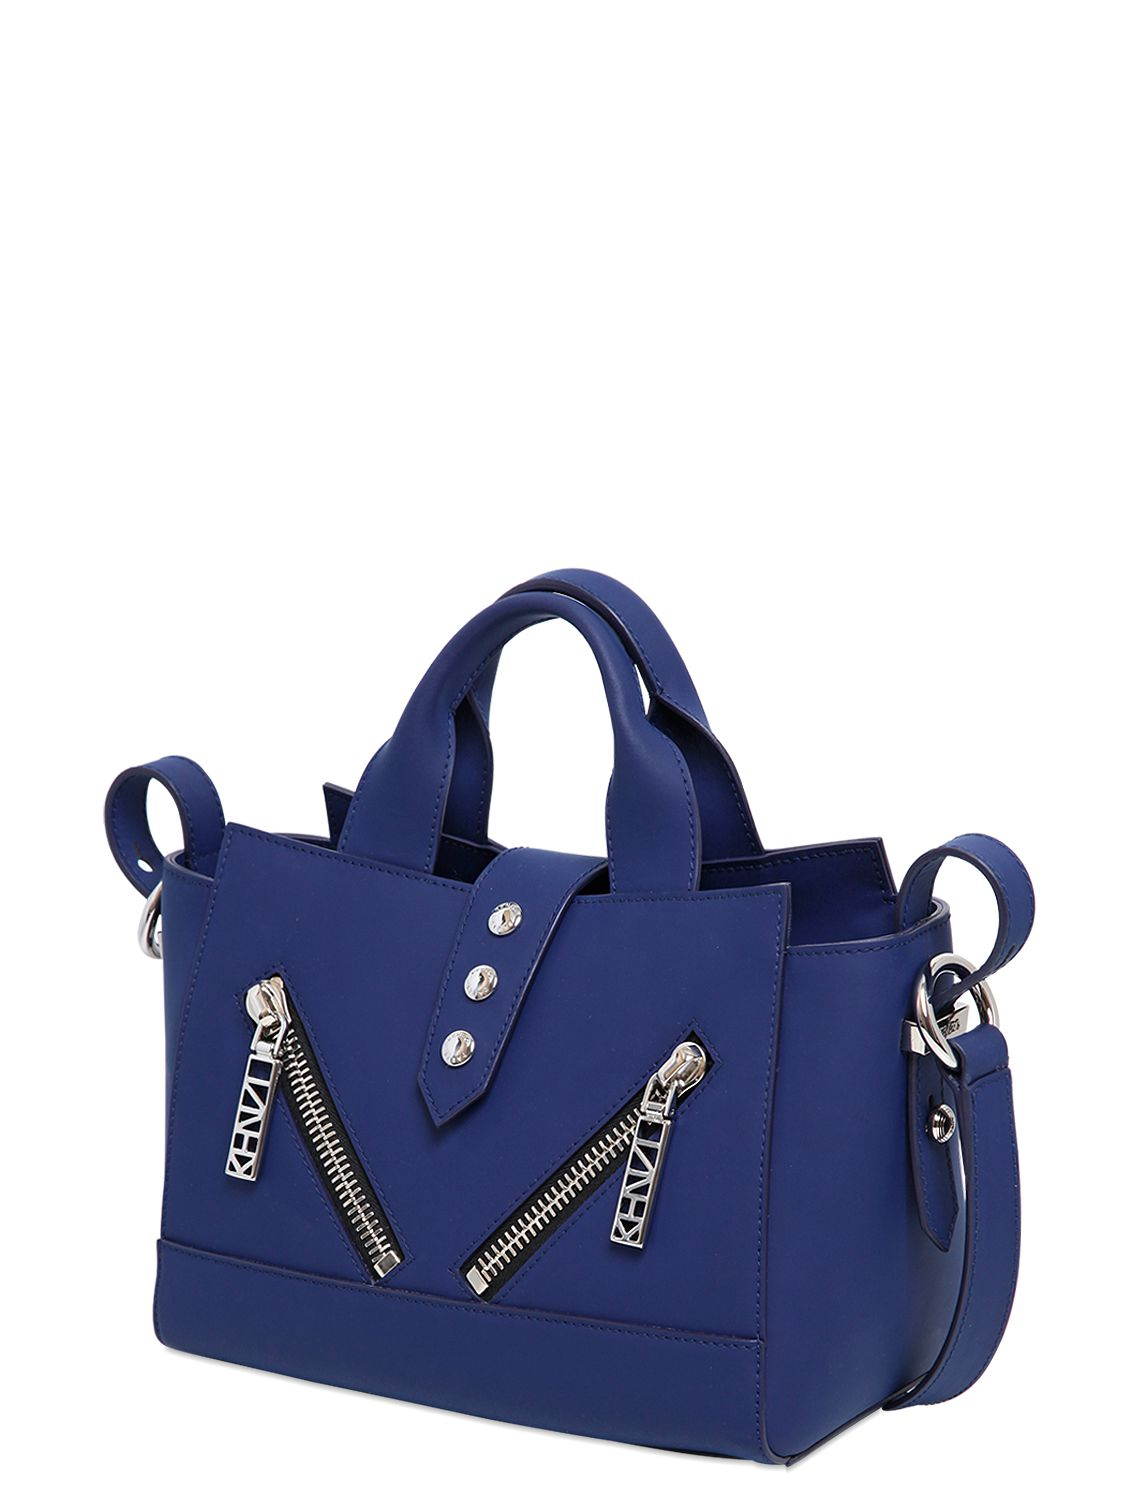 158e72ad48b KENZO Mini Kalifornia Rubberized Leather Bag in Blue - Lyst